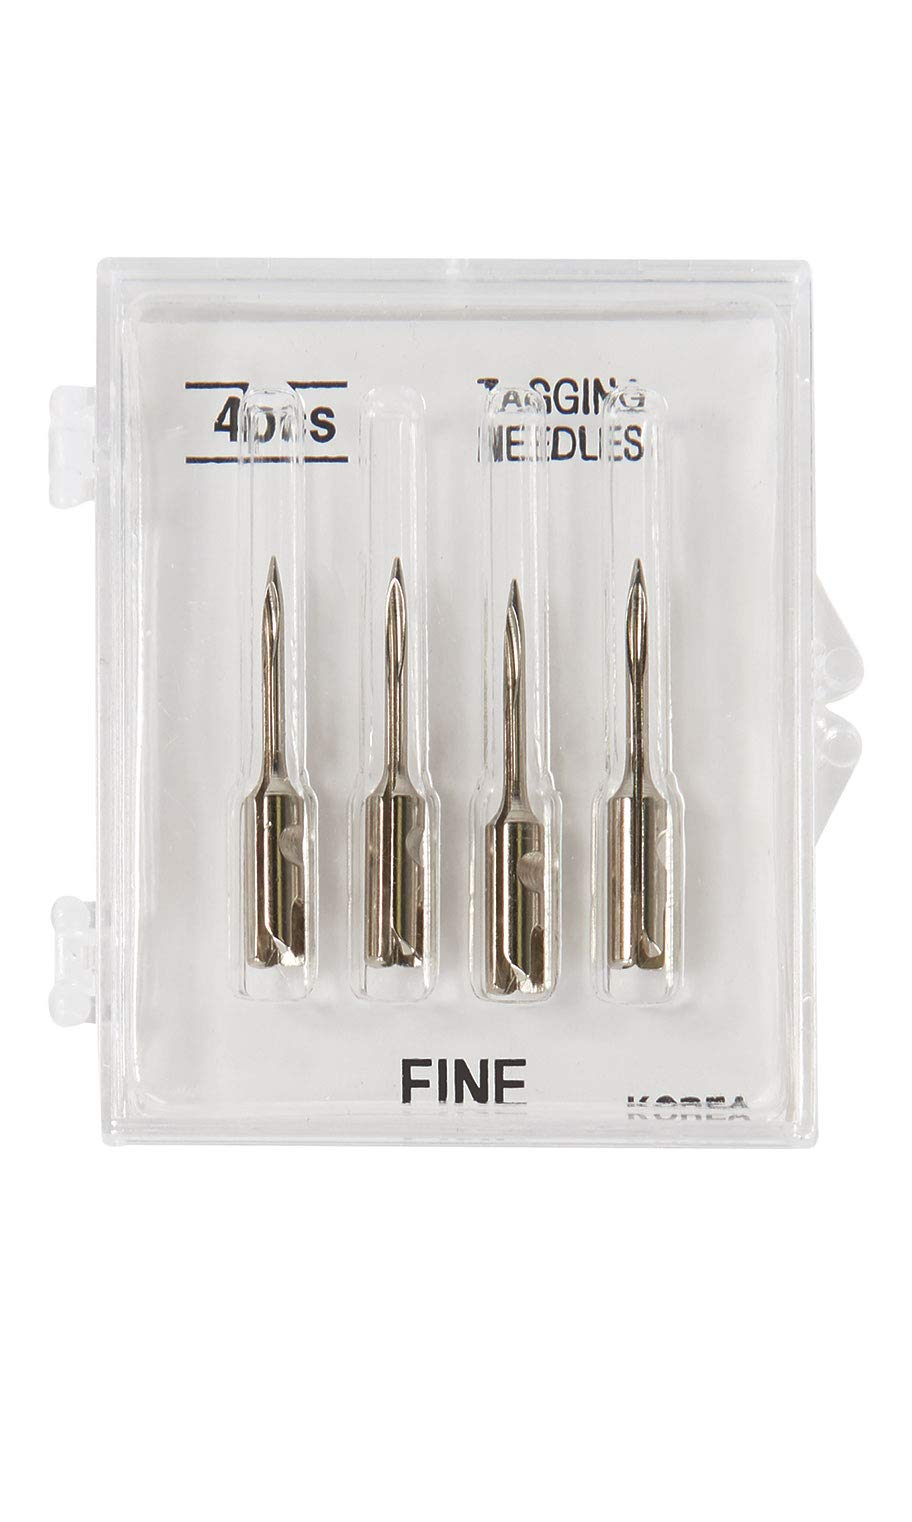 All Steel Fine Fabric Tagging Gun Replacement Needles- Box of 4 by SSWBasics